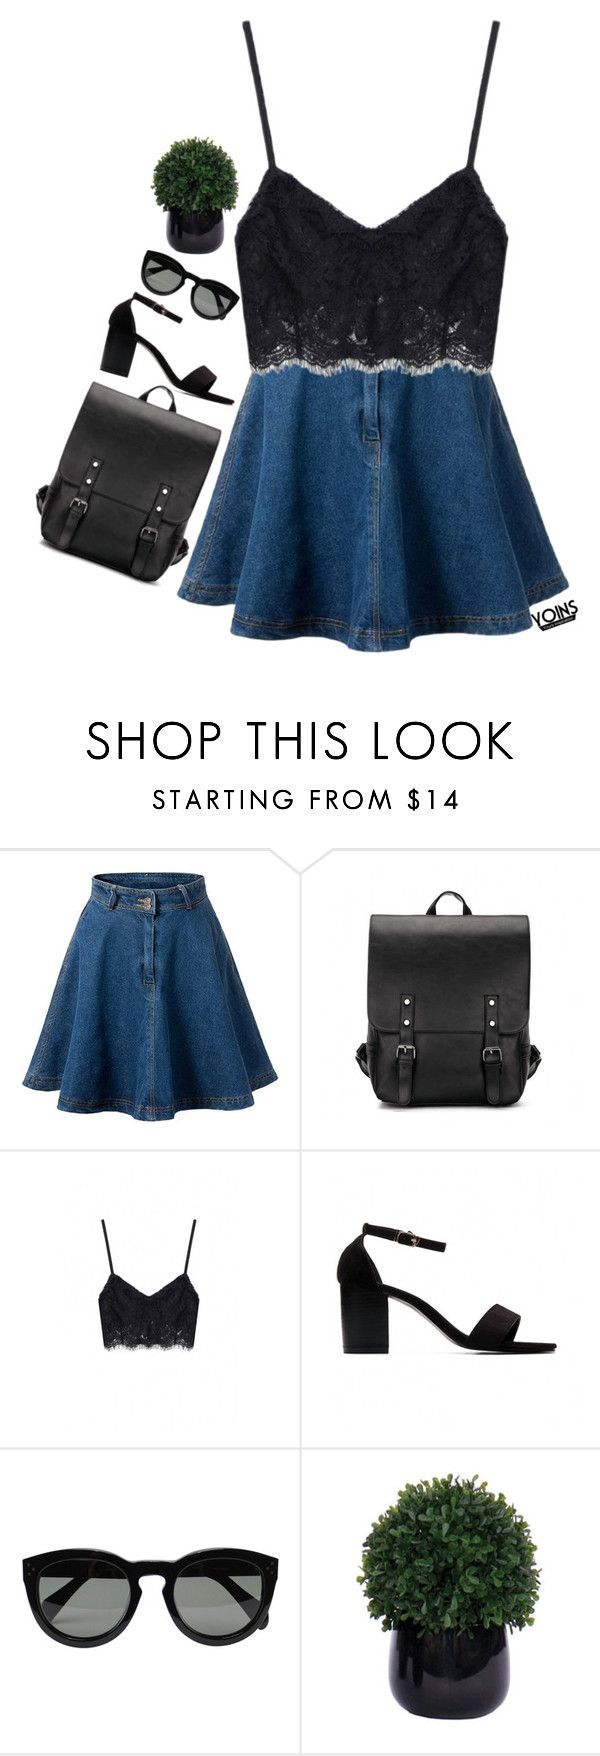 """#Yoins"" by credentovideos ❤ liked on Polyvore featuring CÉLINE and Lux-Art Silks"